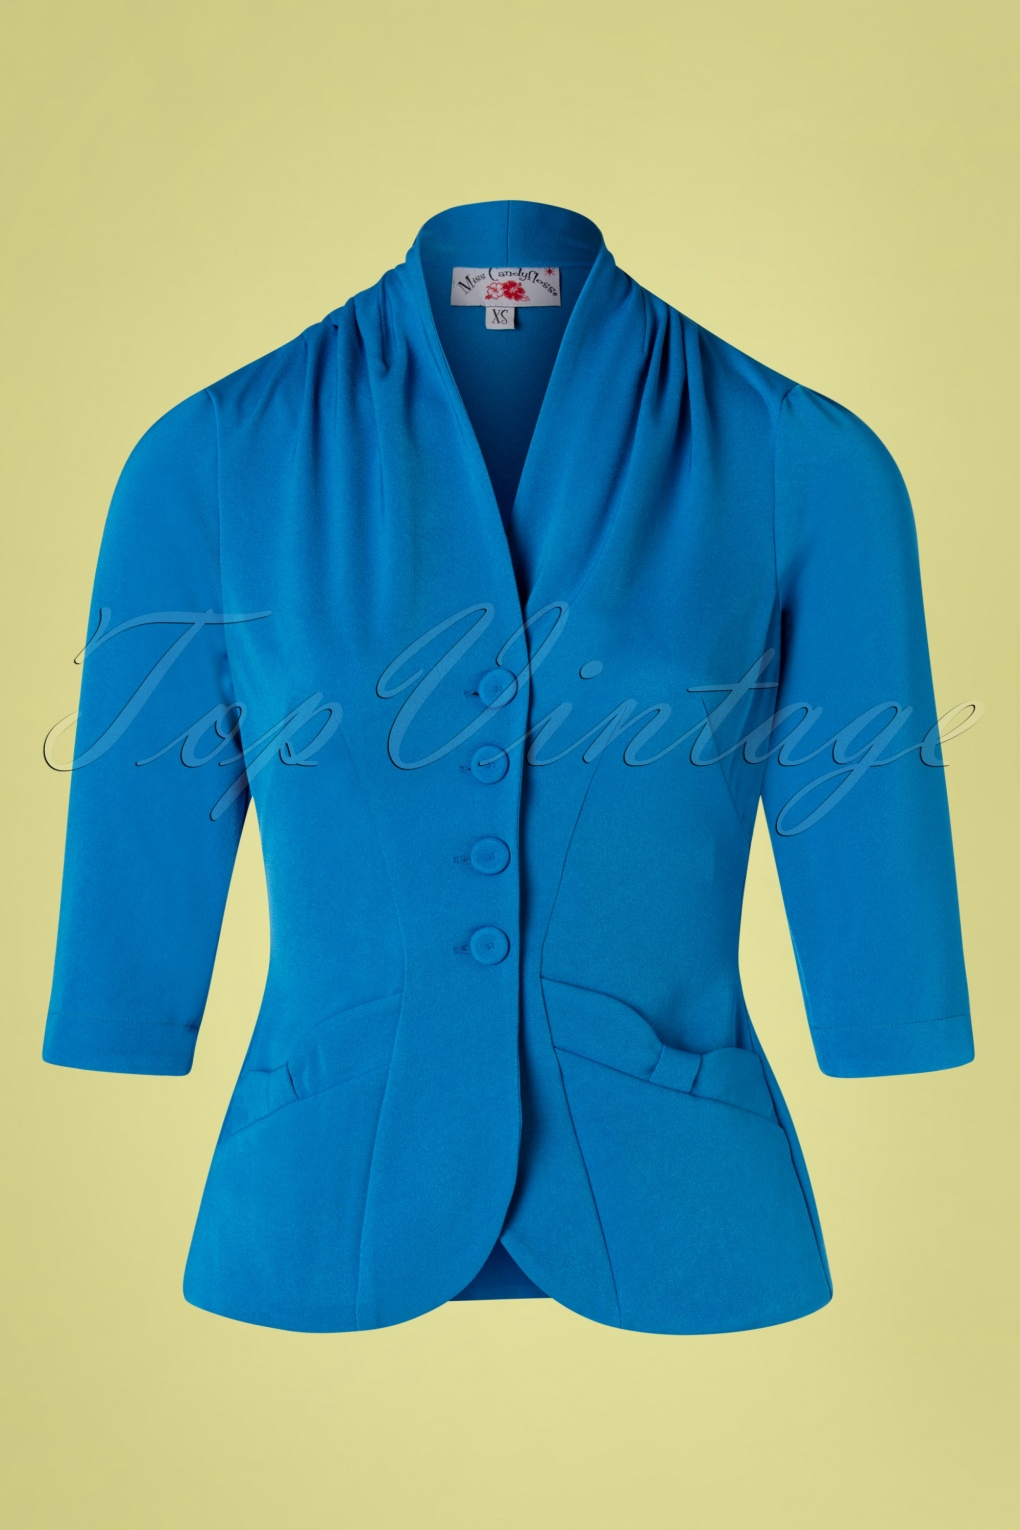 1950s Jackets, Coats, Bolero | Swing, Pin Up, Rockabilly 40s Adelaide Blazer in Blue £71.99 AT vintagedancer.com